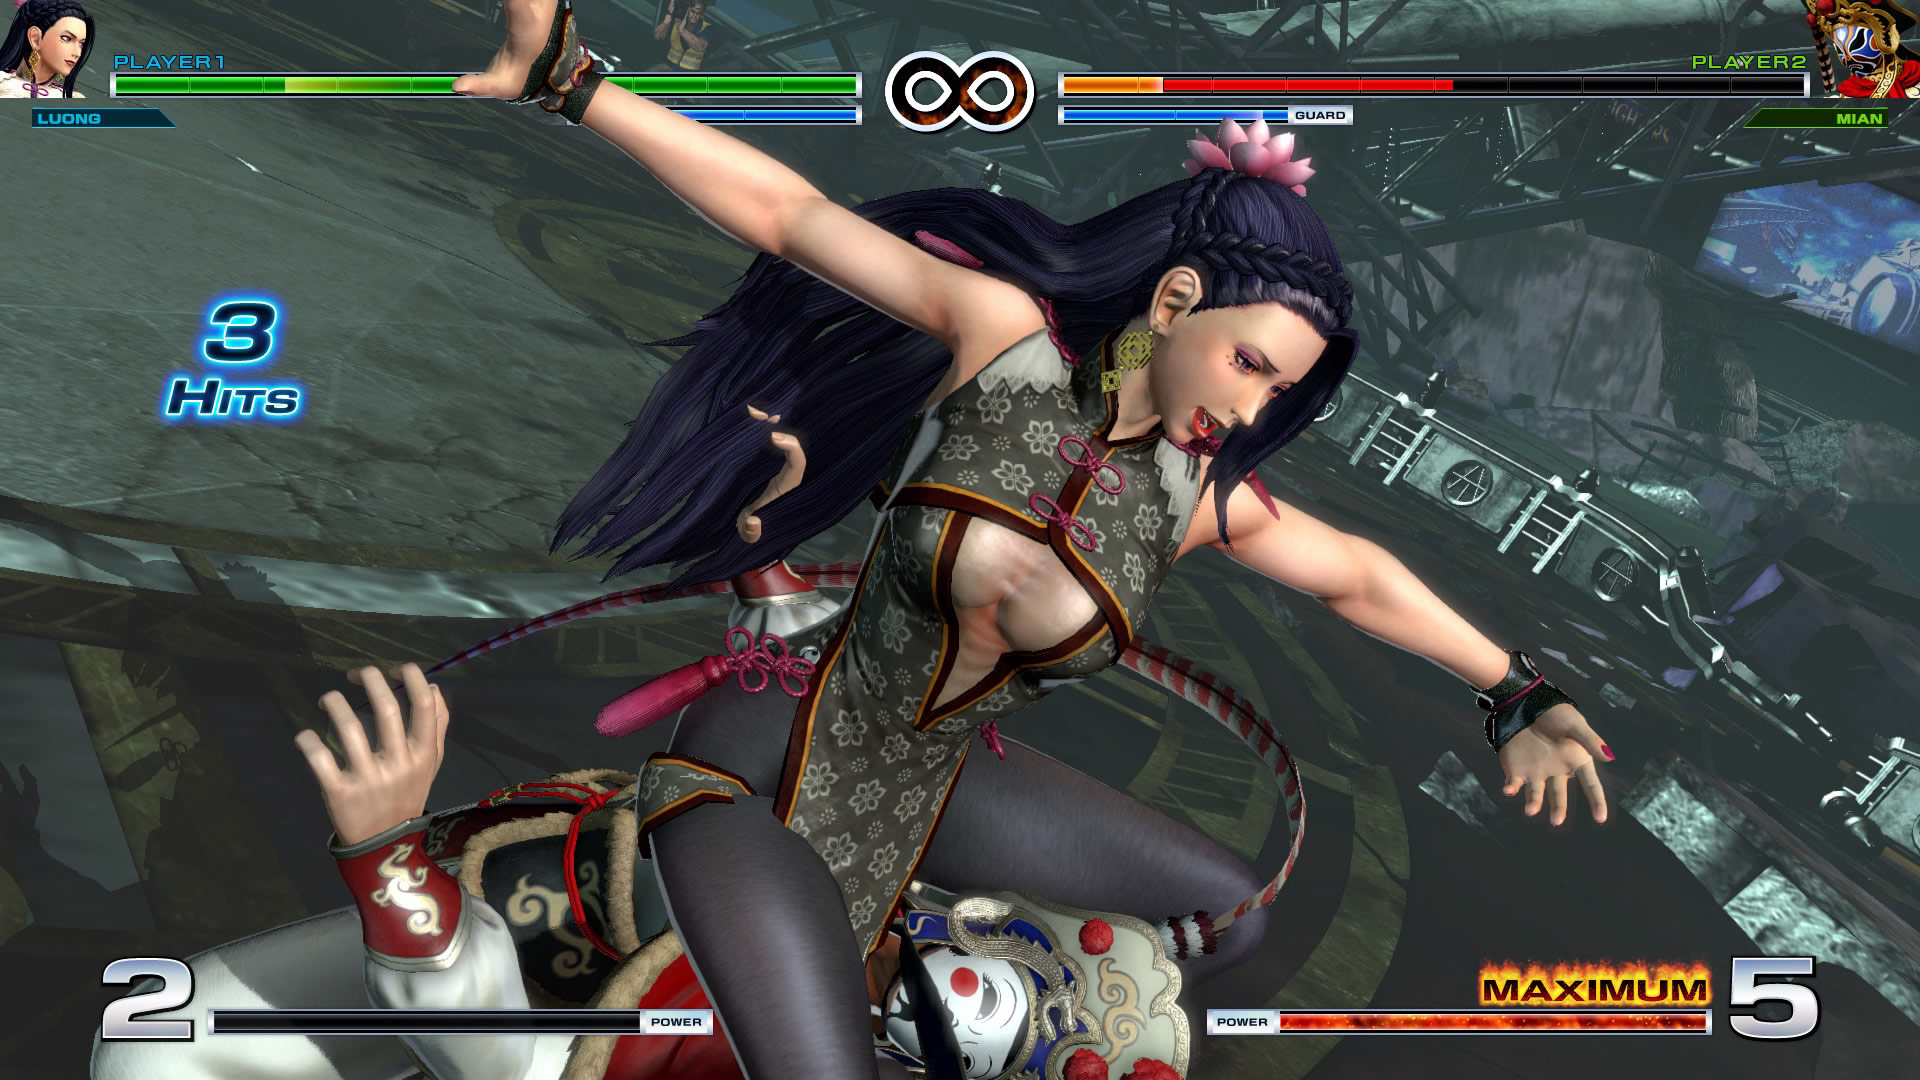 King of Fighters 14 1.10 graphics update 37 out of 60 image gallery